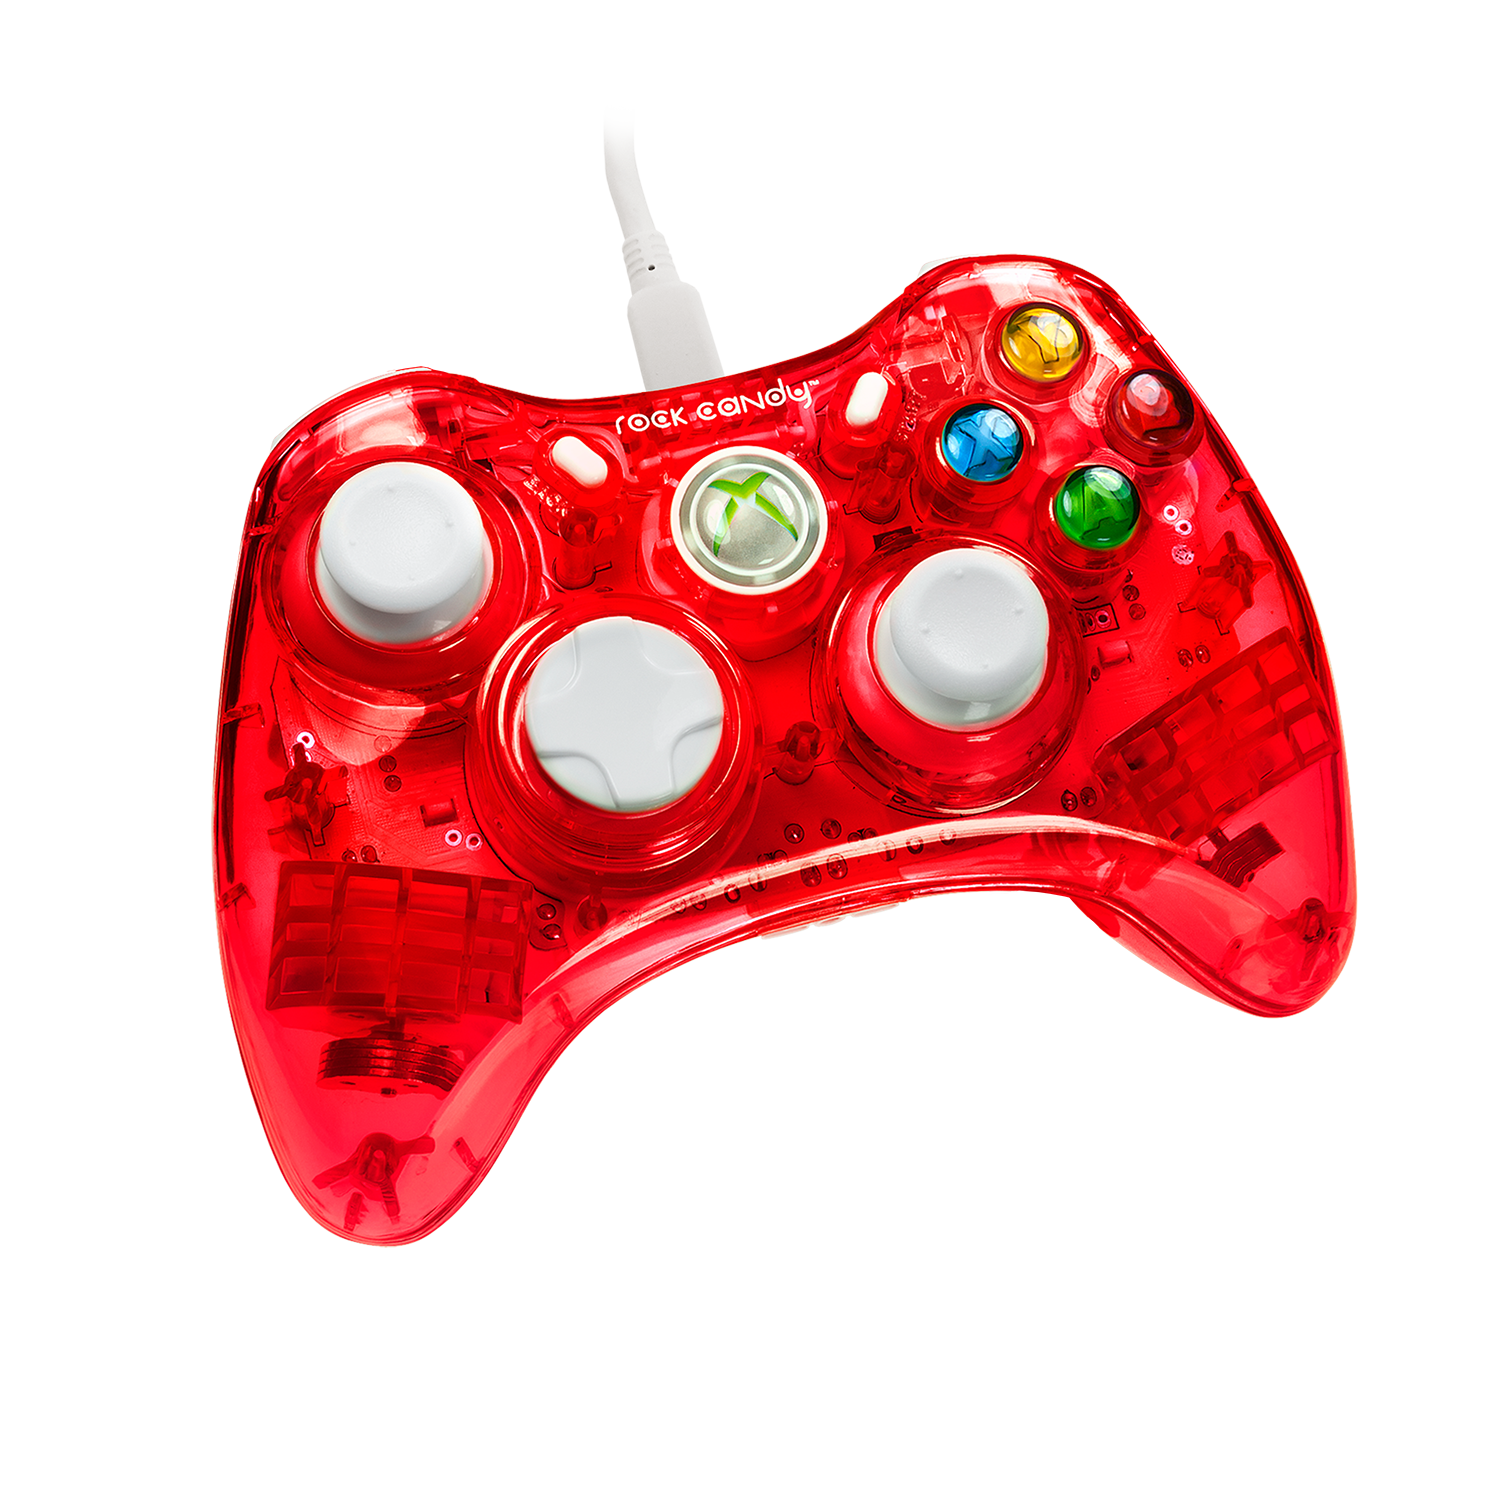 PDP Rock Candy Xbox 360 Wired Controller, Stormin' Cherry, 037-010-NA-RD